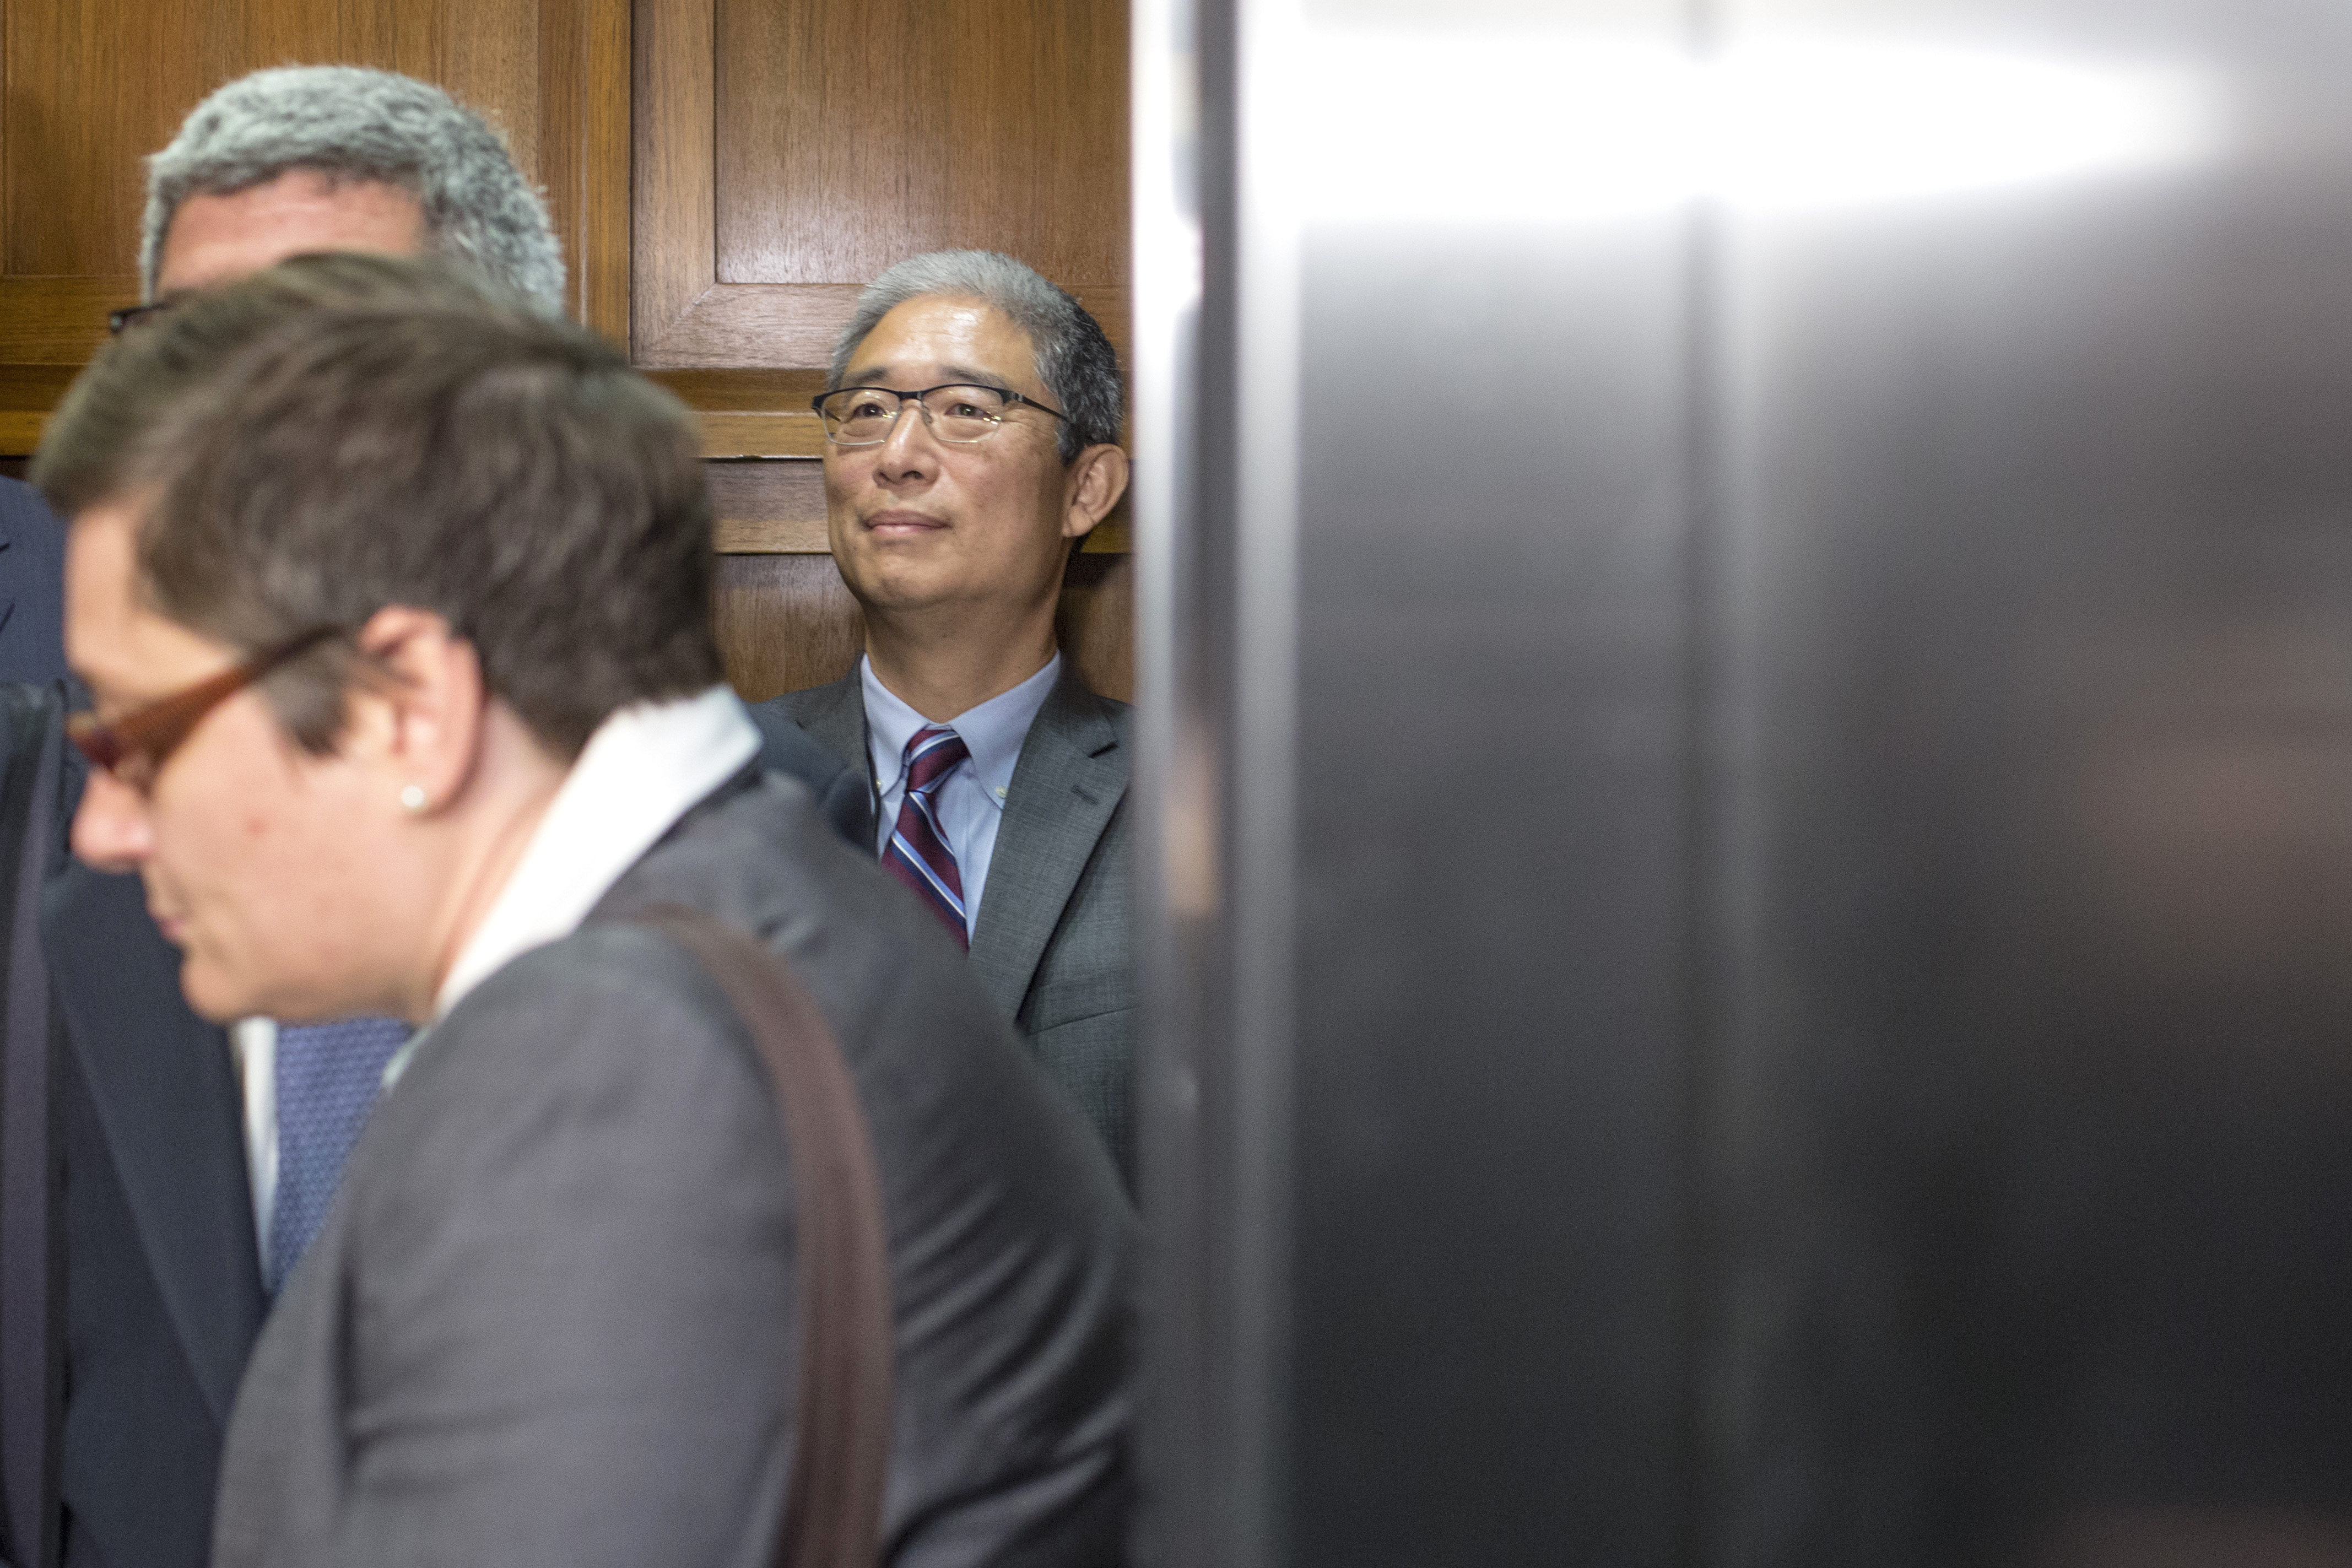 Ohr 302 Notes Prove FBI Tried to Hide True Source of Trump-Russia Allegations